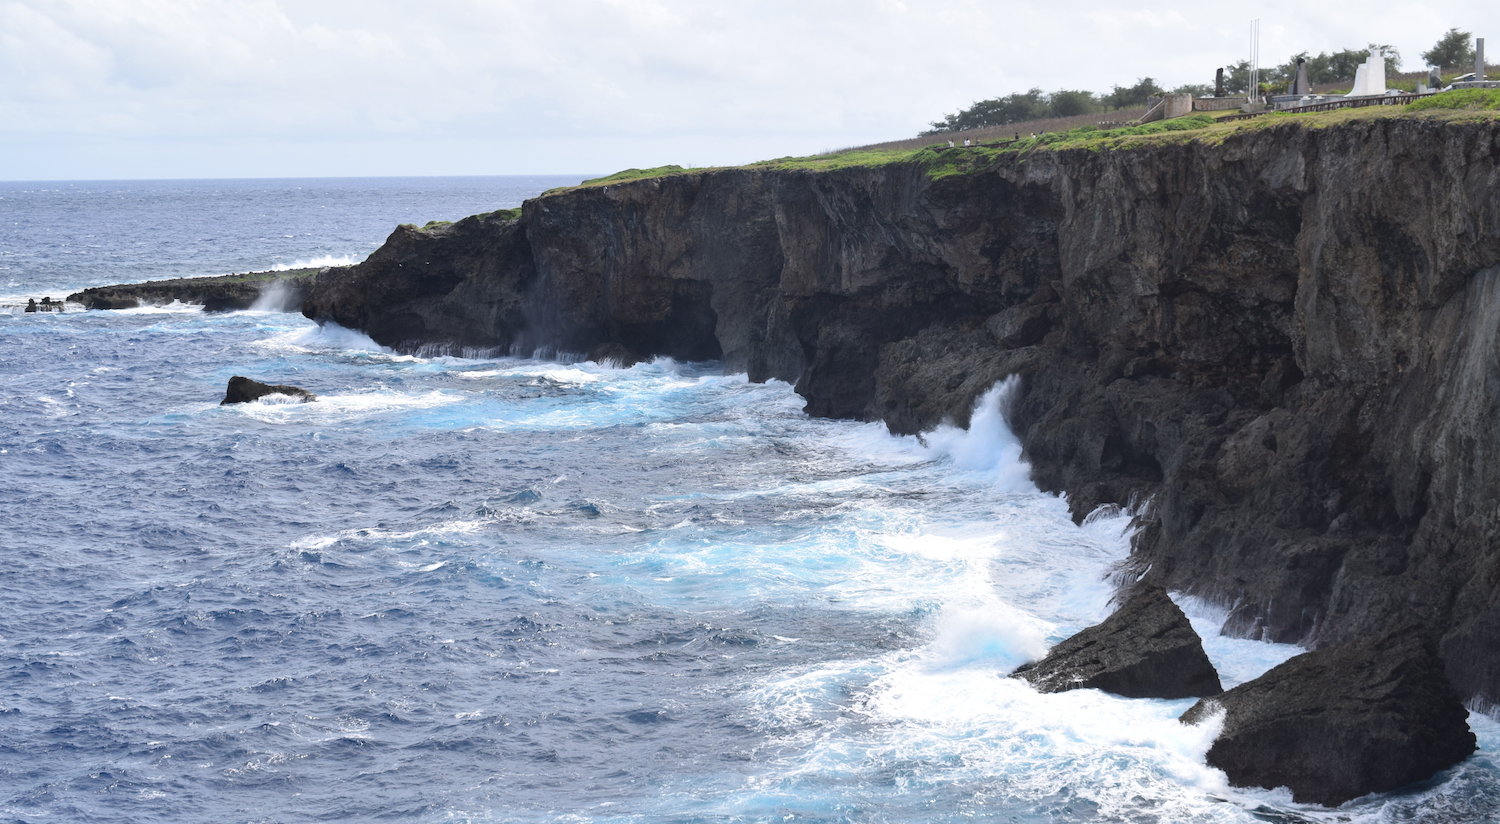 Banzai Cliff in Saipan in Northern Mariana Islands